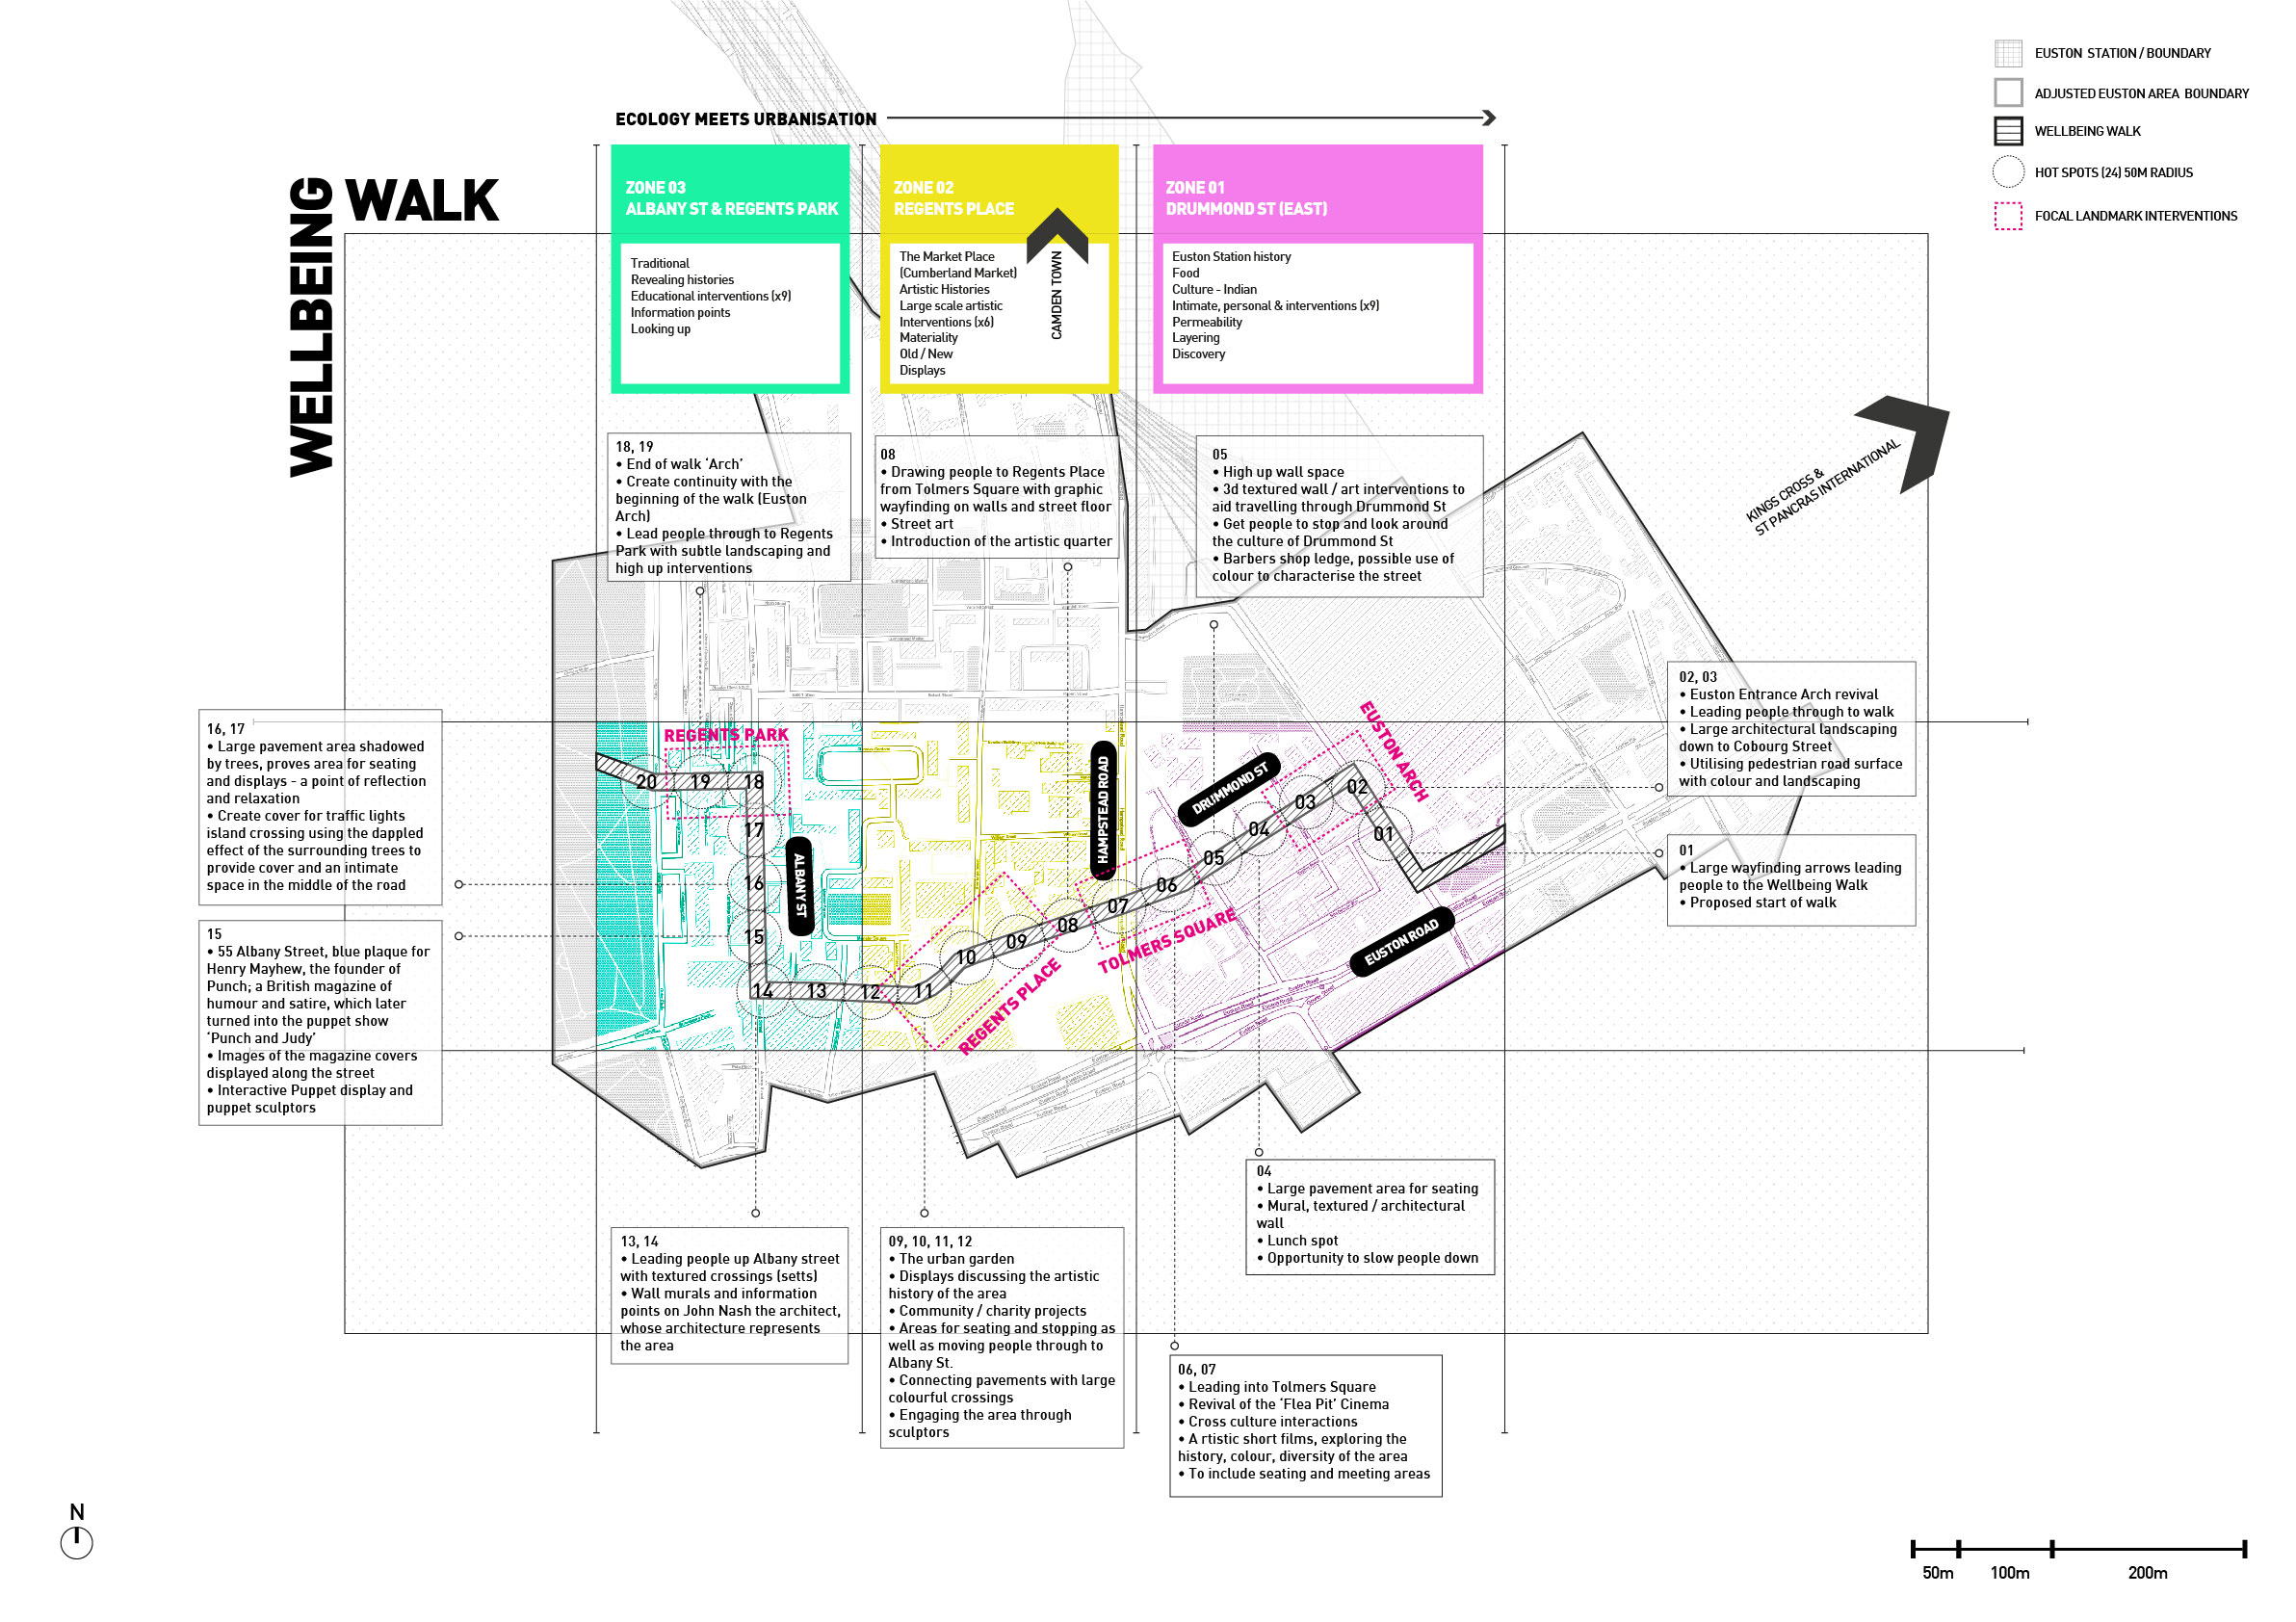 Bolter Design strategy and mapping for The Wellbeing Walk